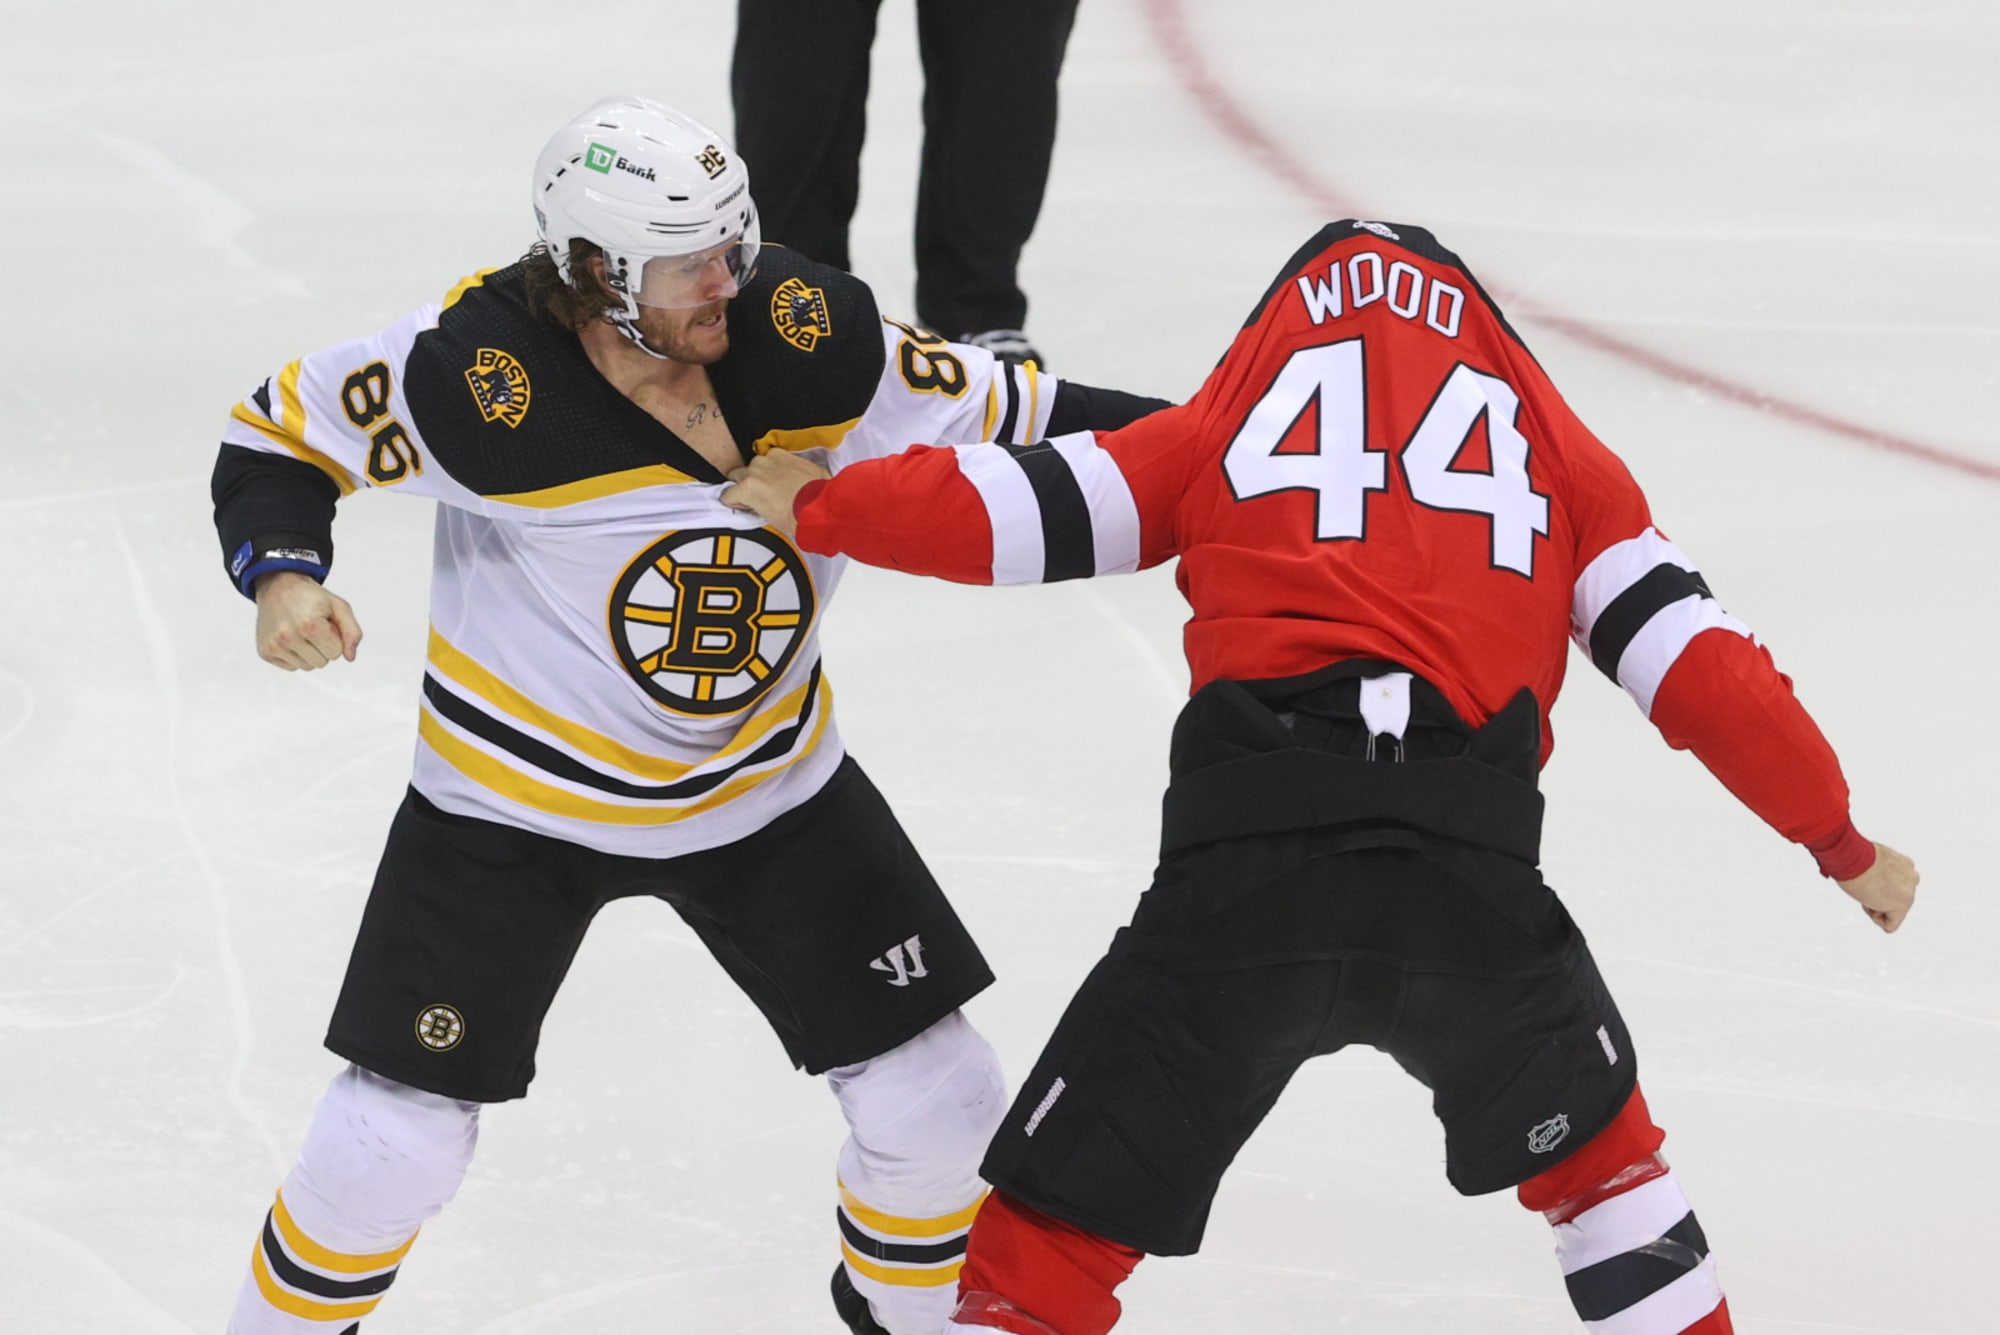 Has Kevan Miller played his last game with the Bruins?